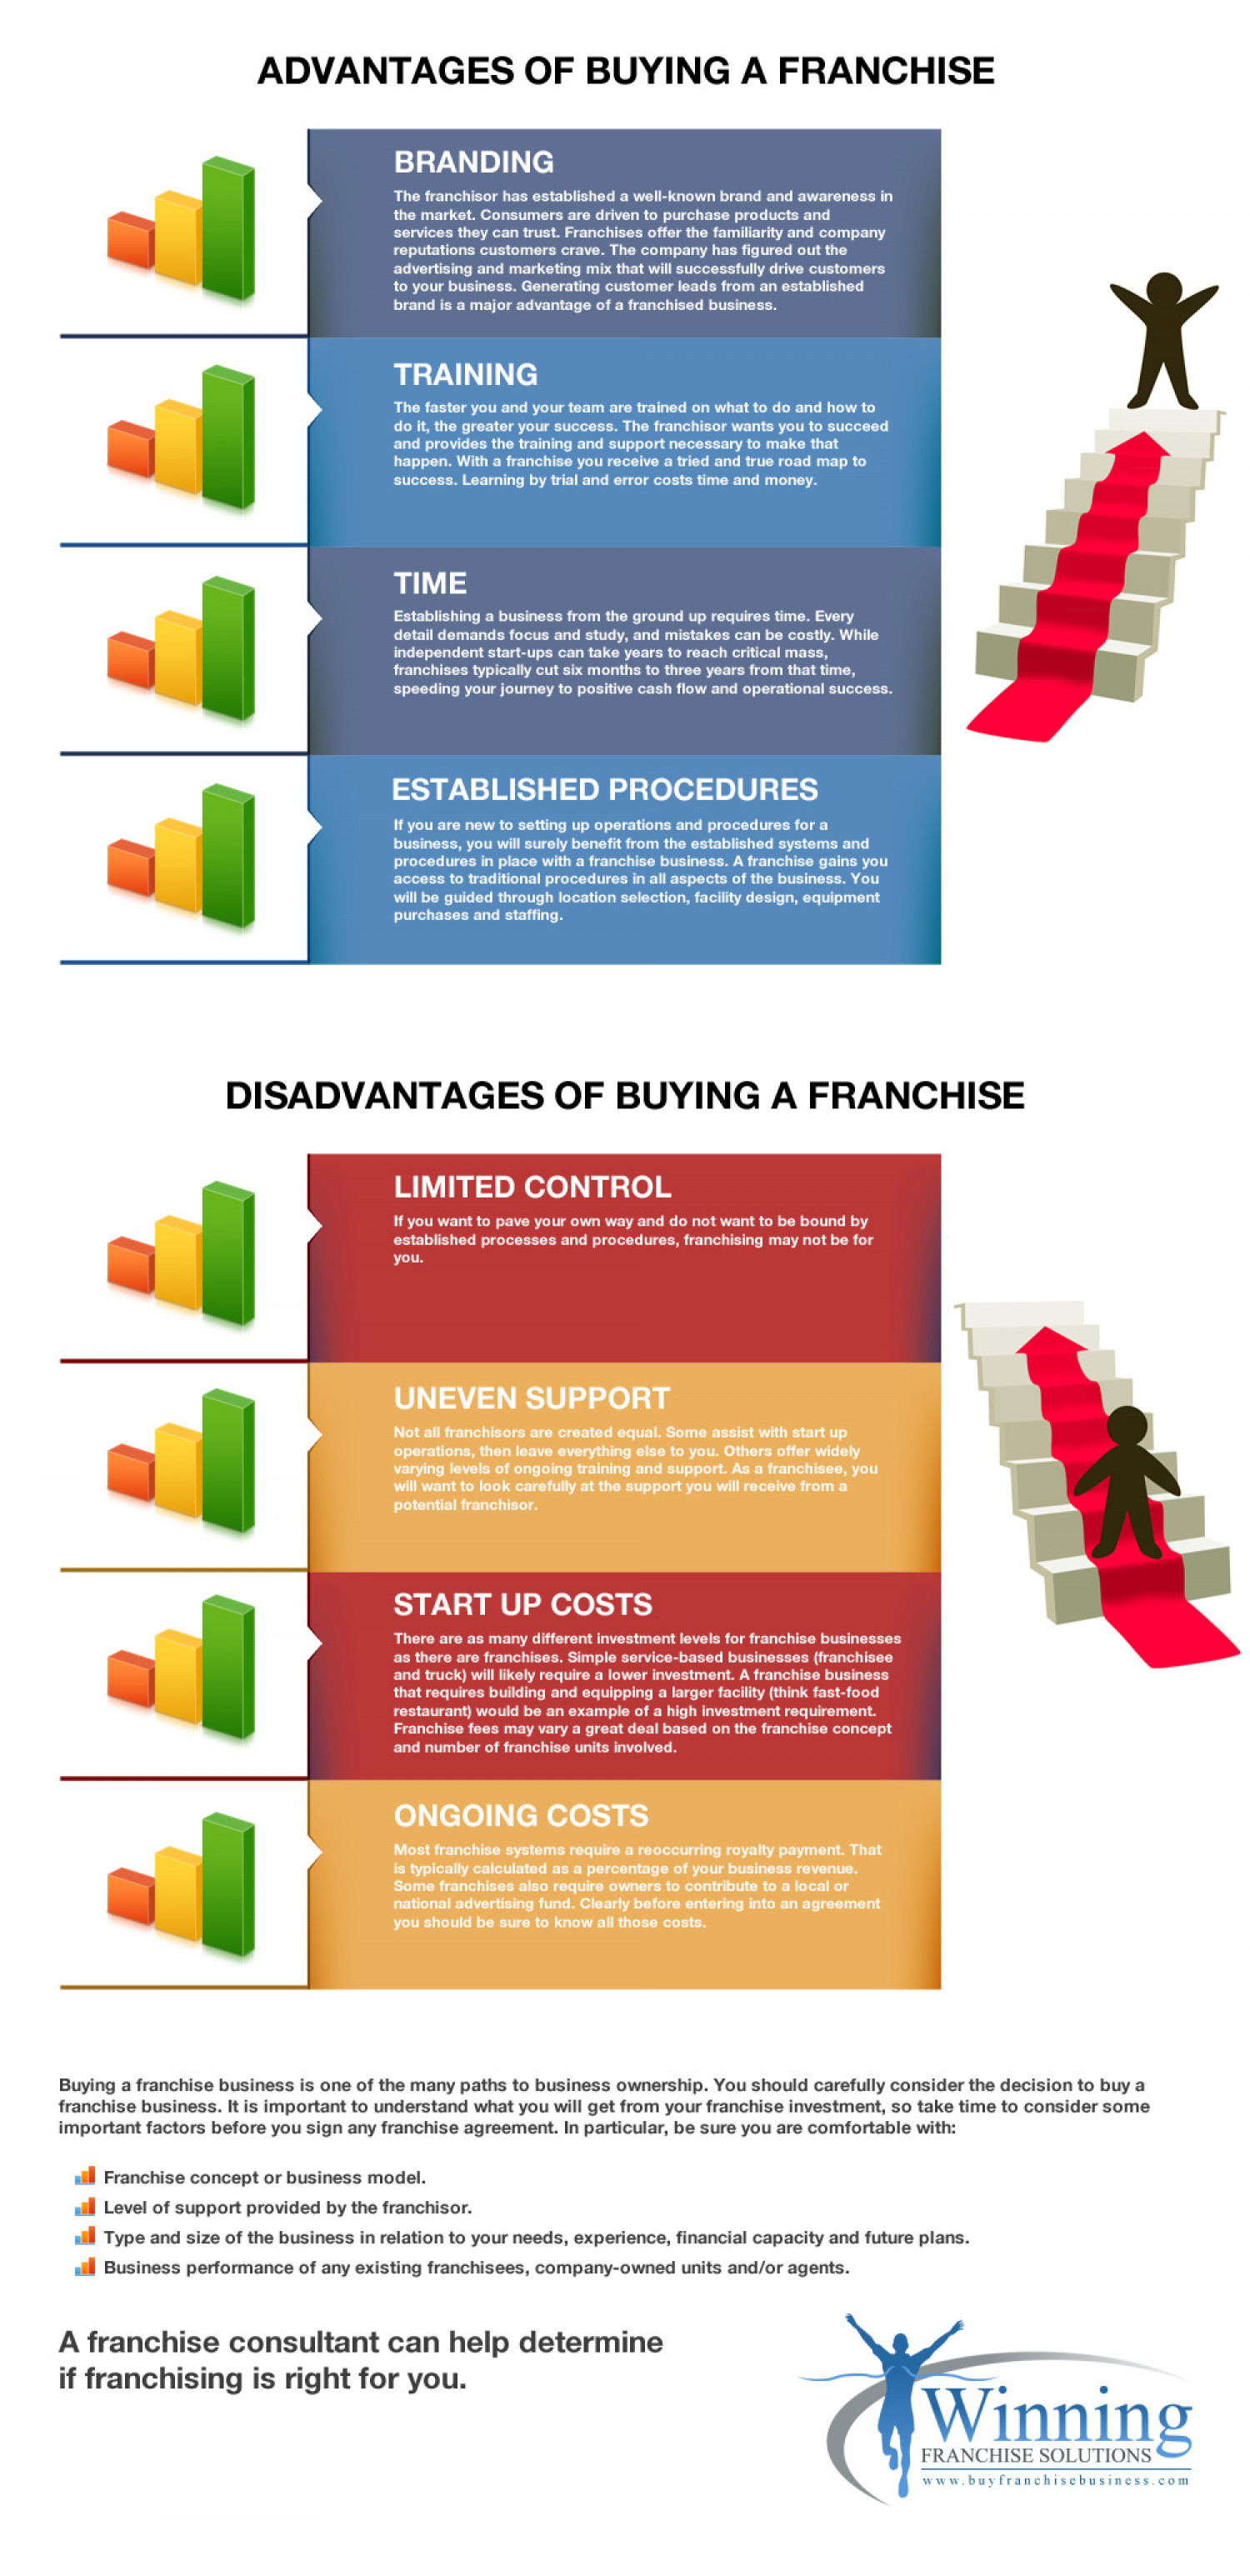 Advantages & Disadvantages of Buying a Franchise | Visual.ly